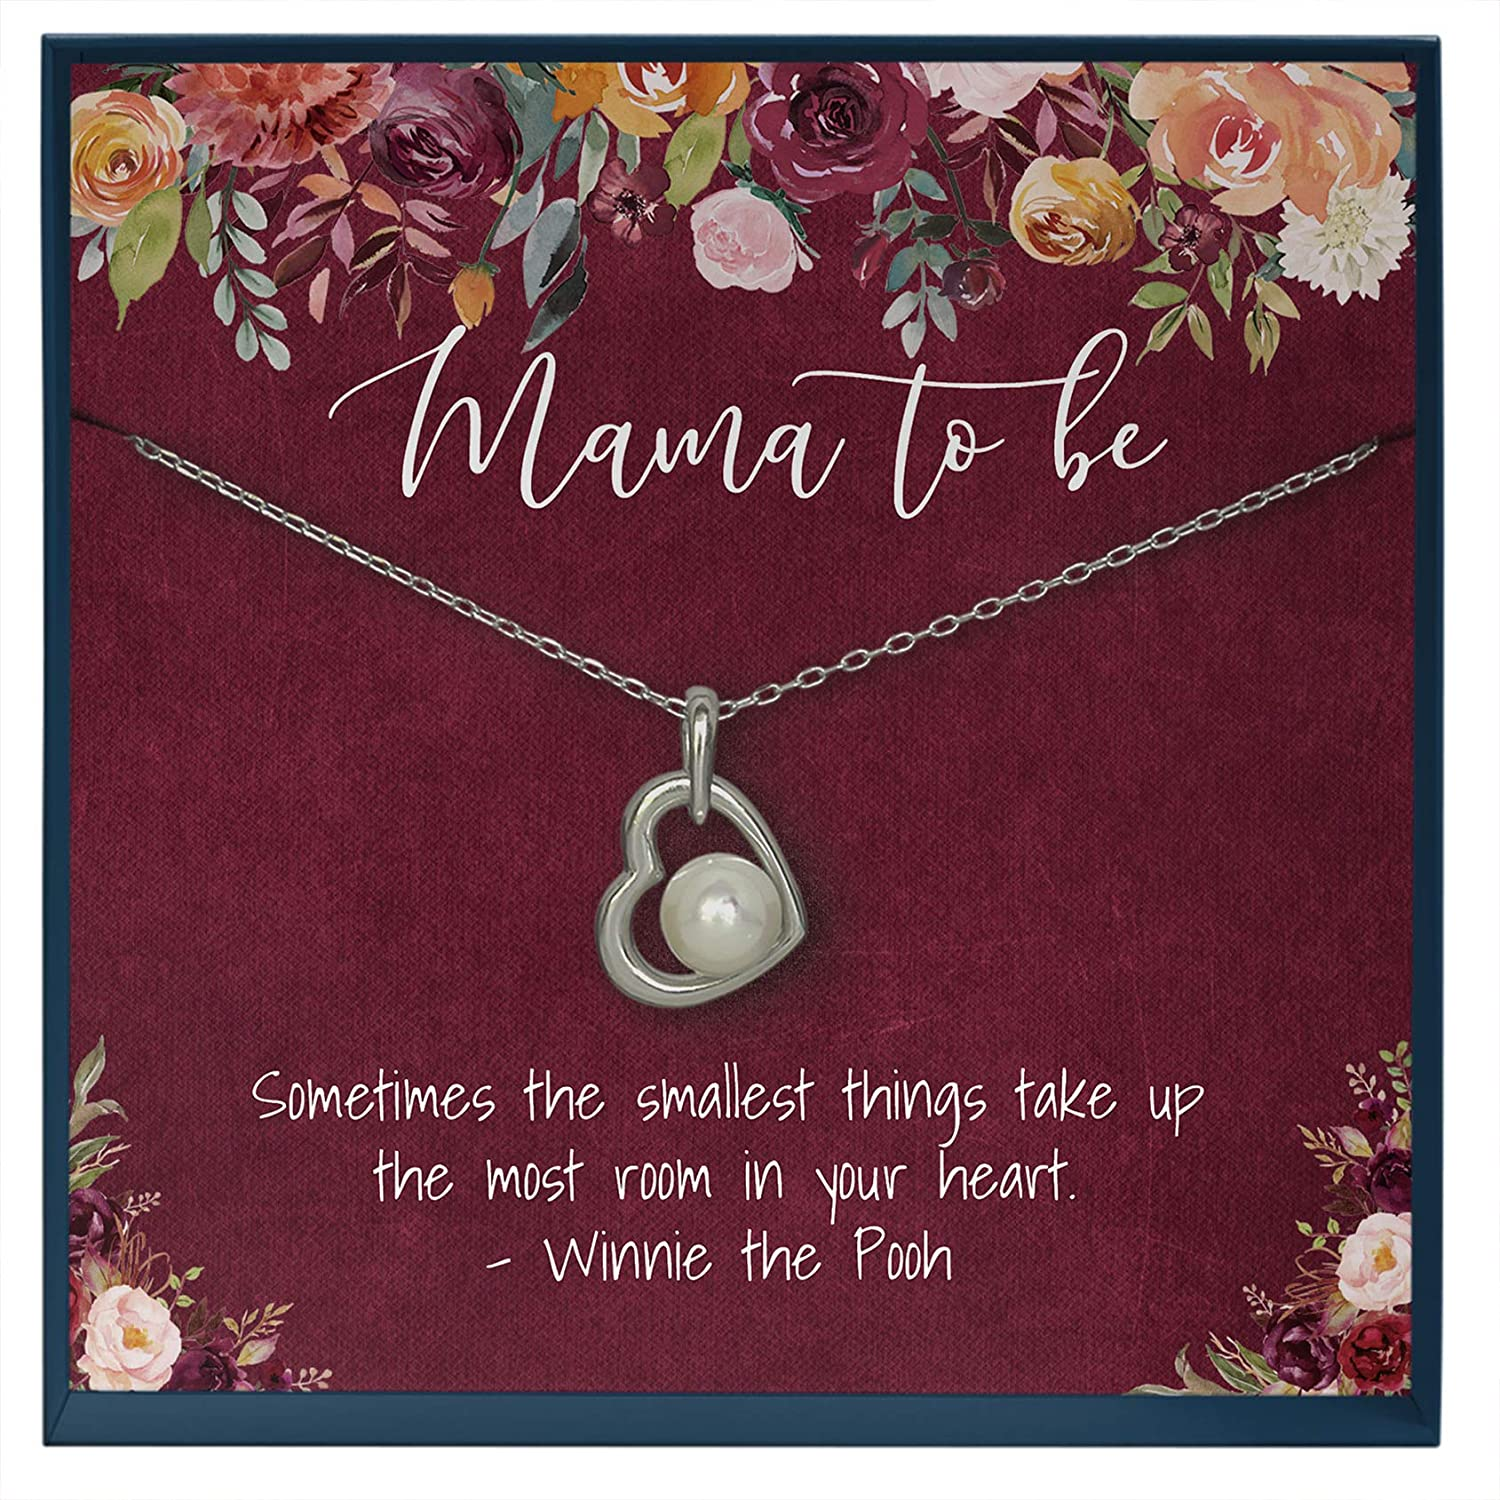 Muse Infinite Pregnant Mom Gifts for New Mom to Be Gifts Congratulation Gifts for Mommy to Be Gifts for Expecting Mom Gifts